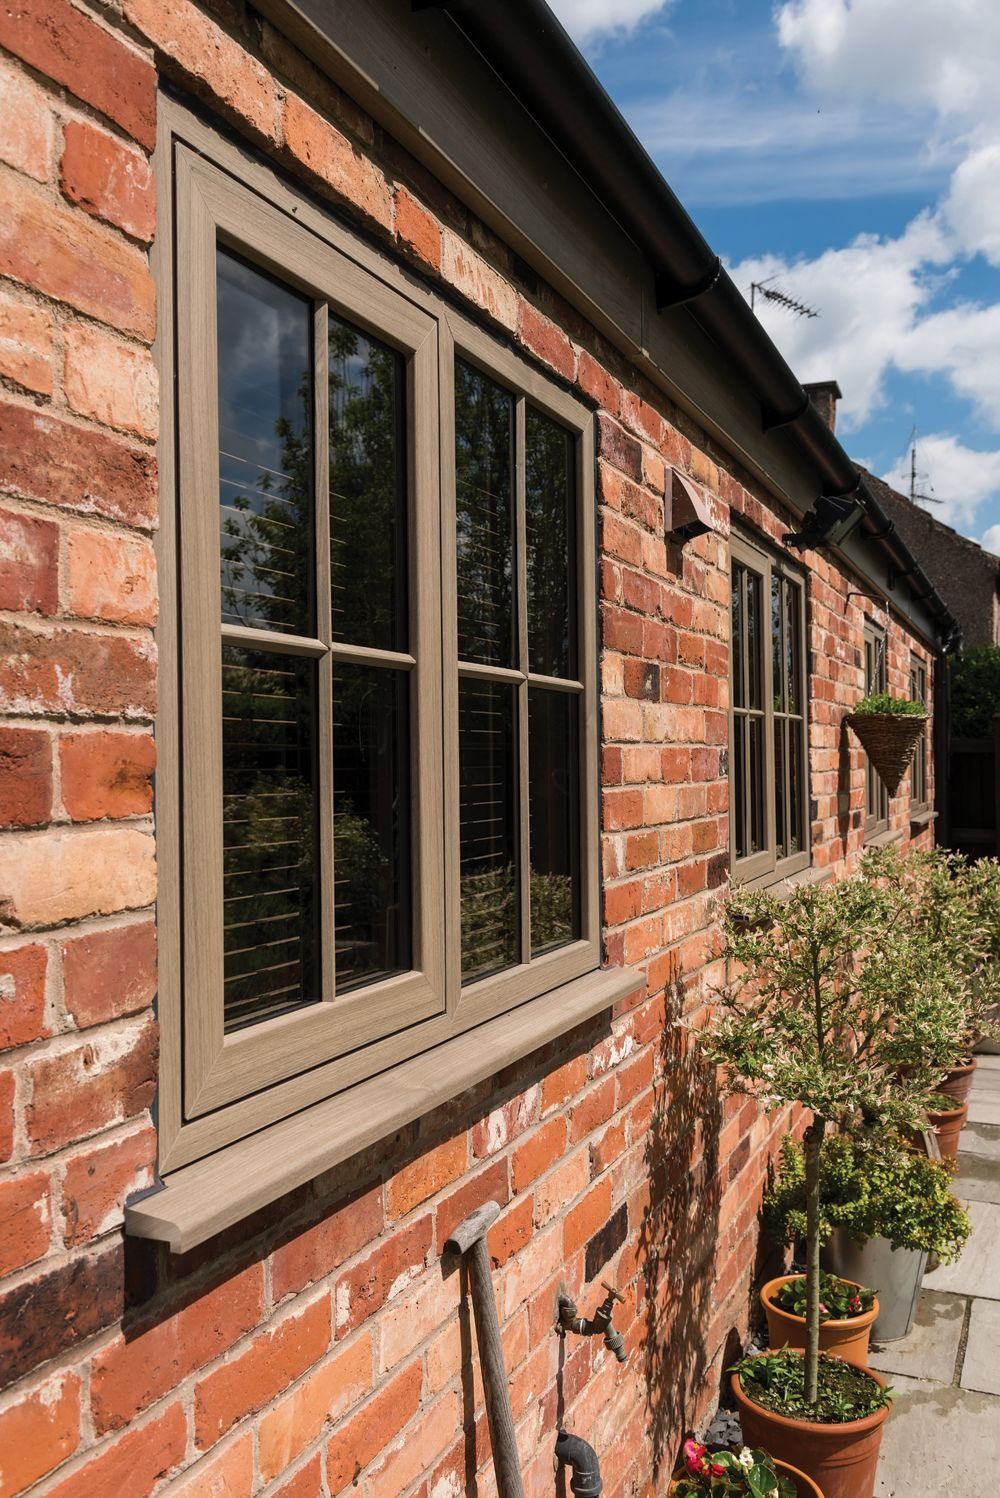 With Is Innovative Super Thermally Efficient Design Modus Locks Heat In Your Home A Great Way To Reduce Your Heating Bills Aside Windows Upvc Windows Upvc